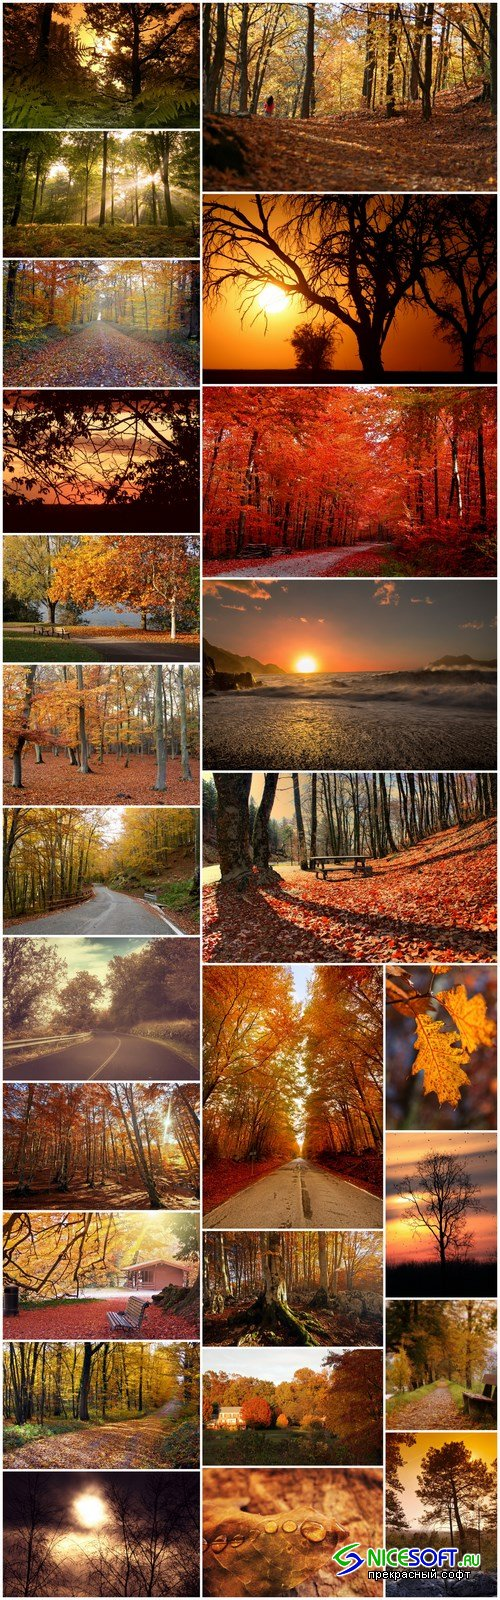 Beautiful autumn forest and landscape - 25xUHQ JPEG Photo Stock